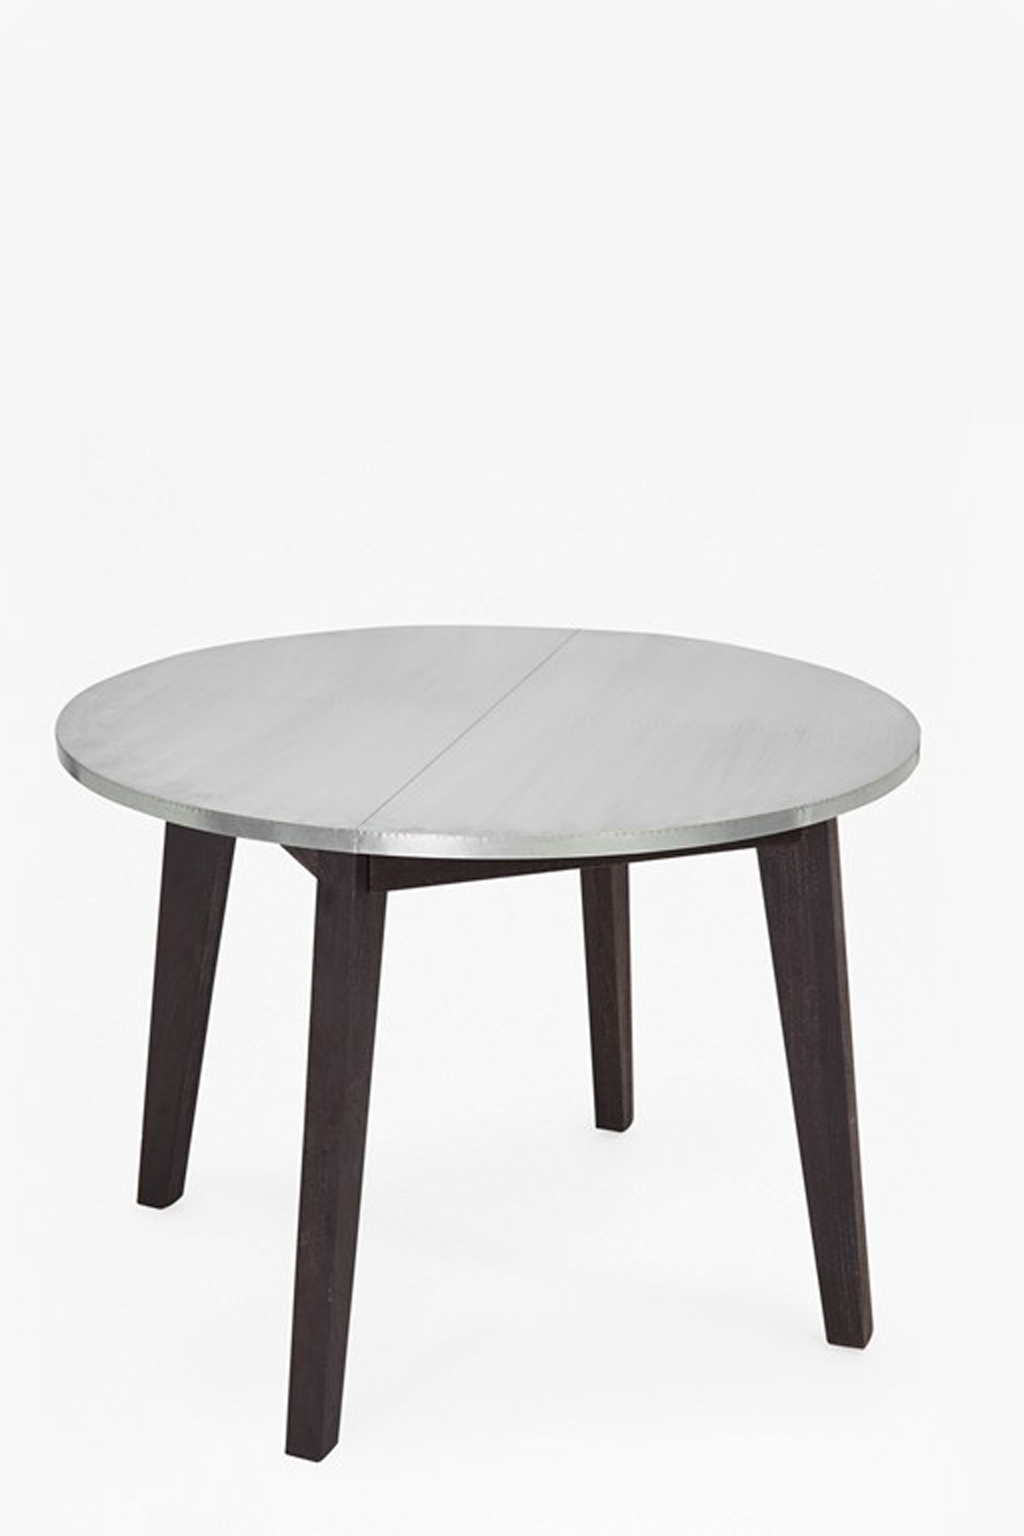 Agra Round Zinc Dining Table Collection French Connection